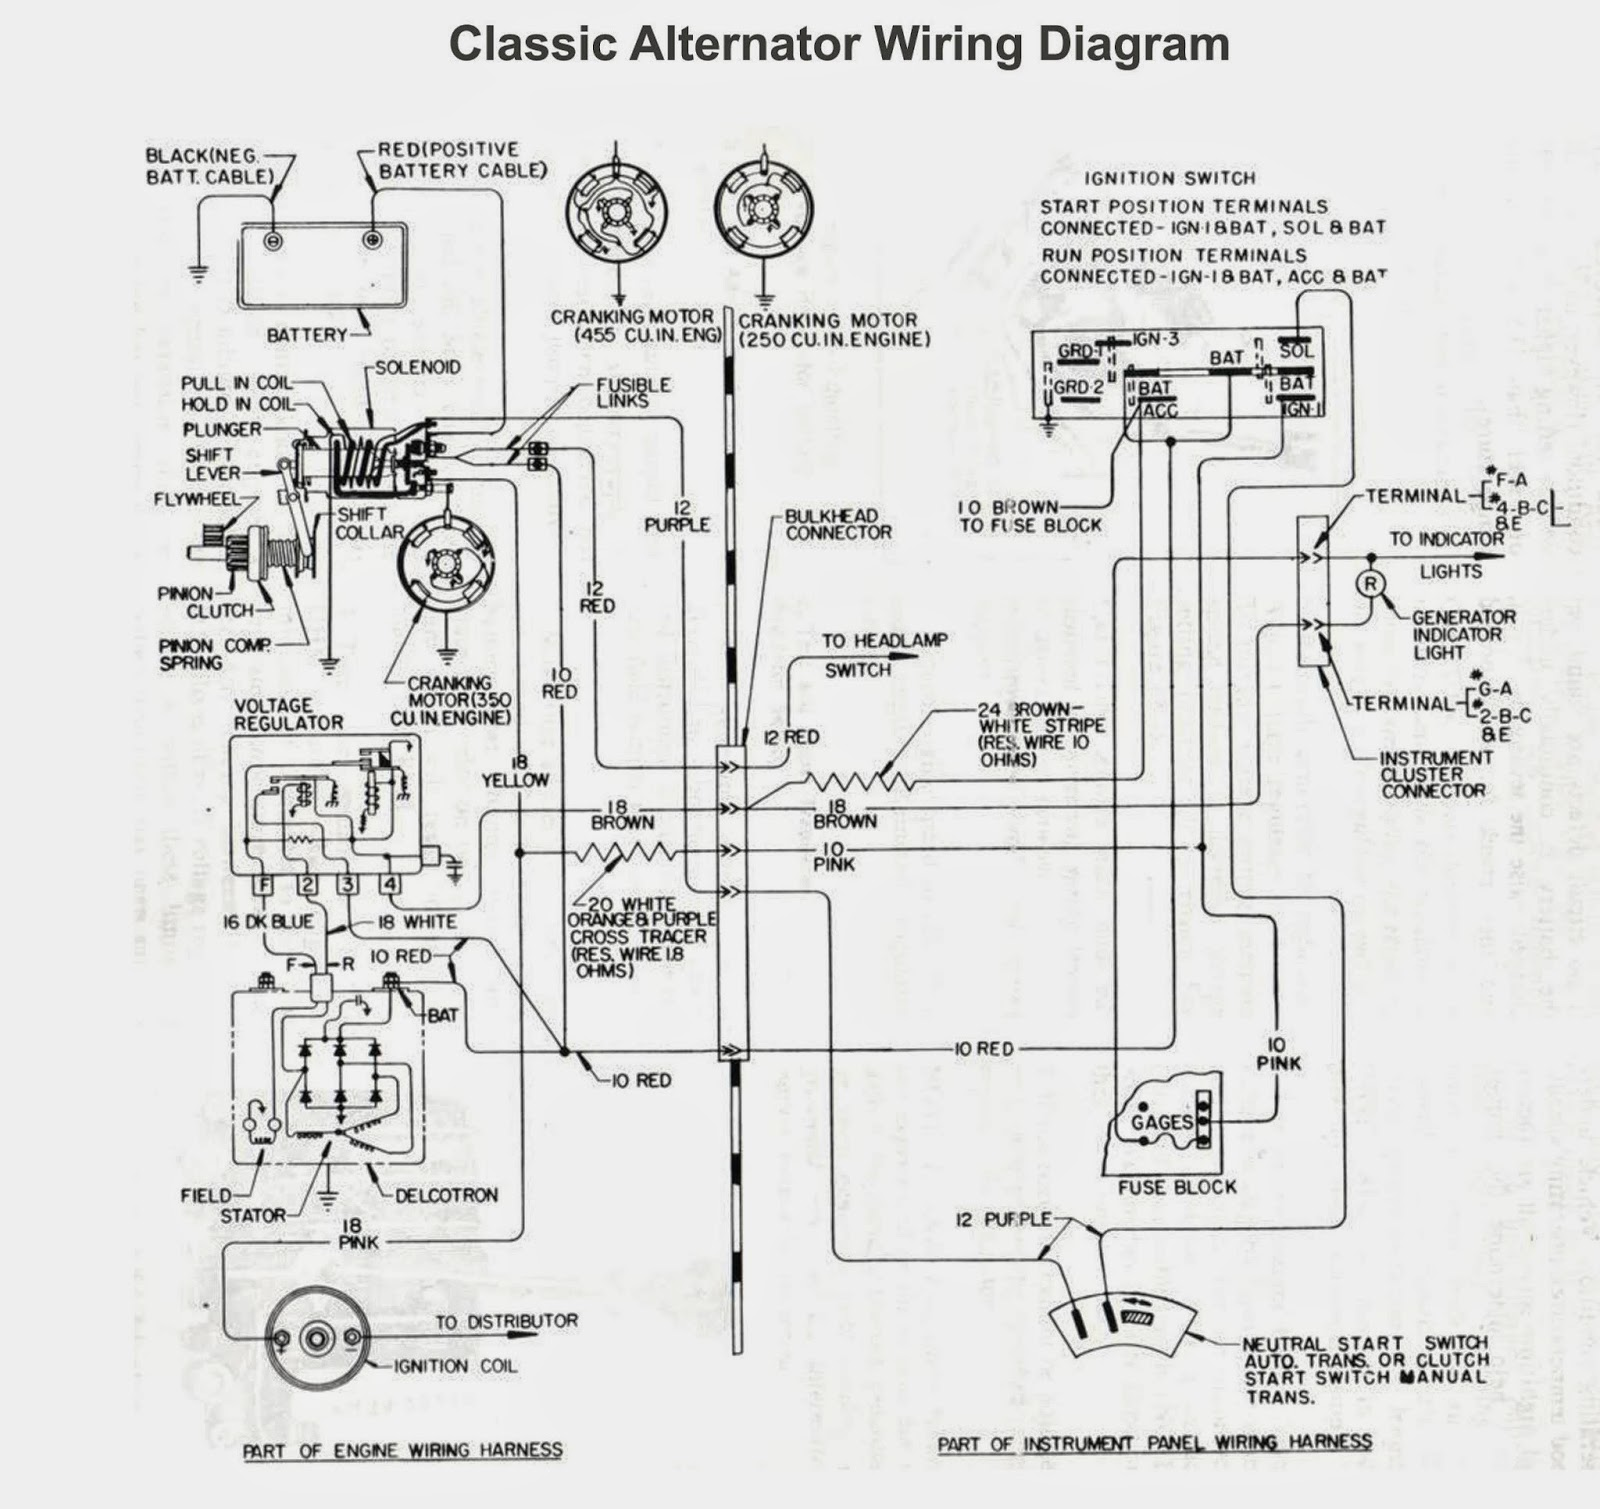 hight resolution of  jd wiring diagram for powell 4630 on jd 4440 fuel tank jd 4440 air cleaner